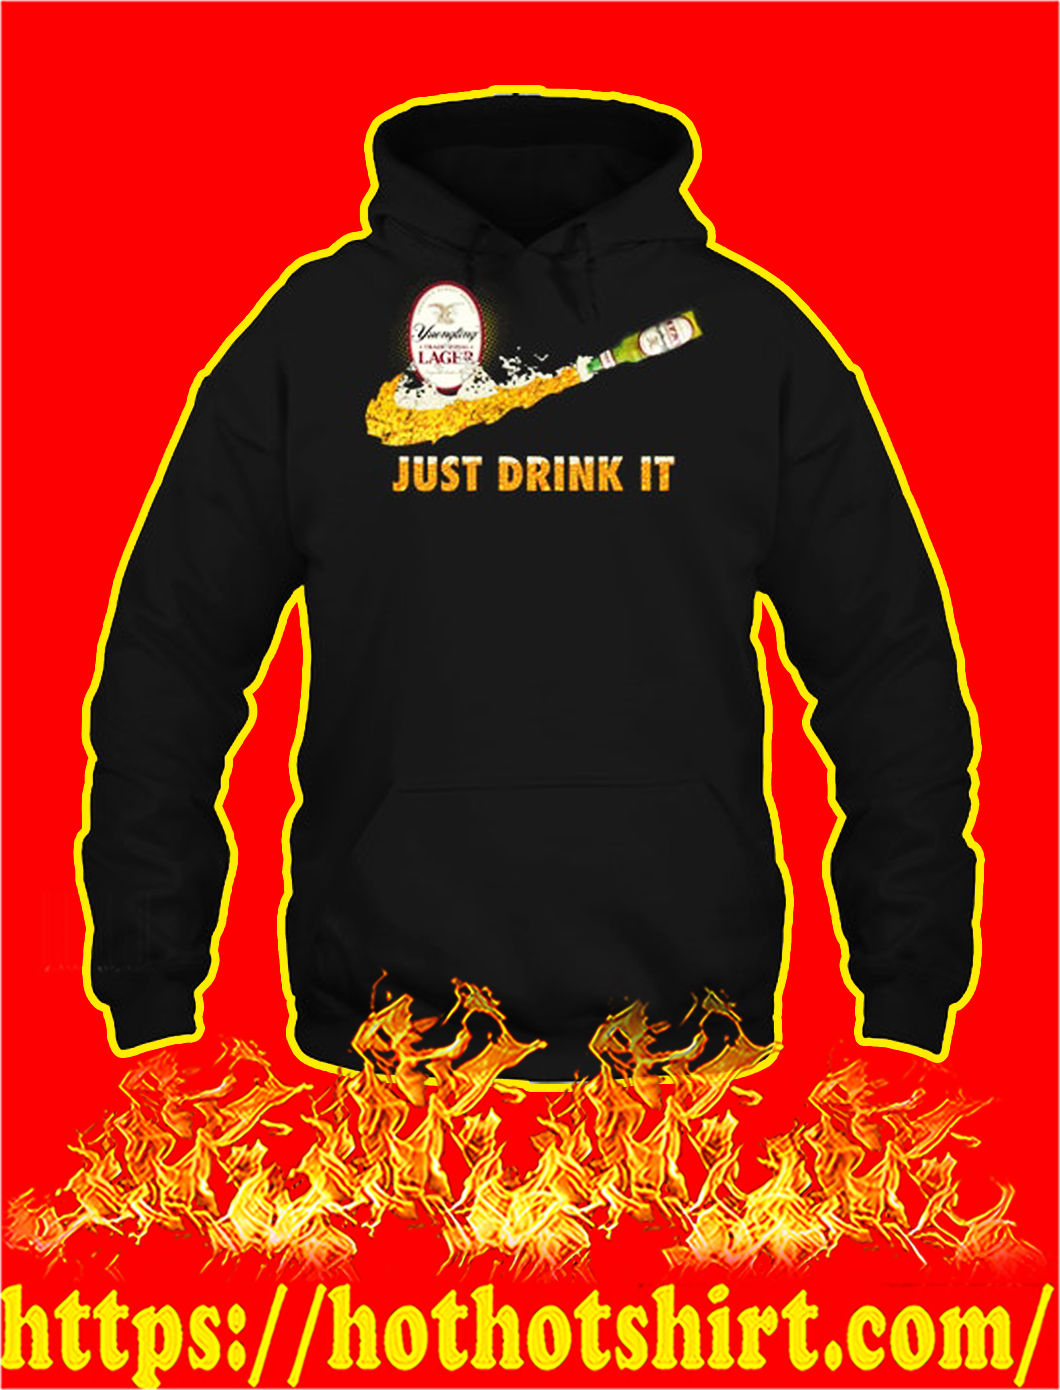 Yuengling traditional lager just drink it hoodie